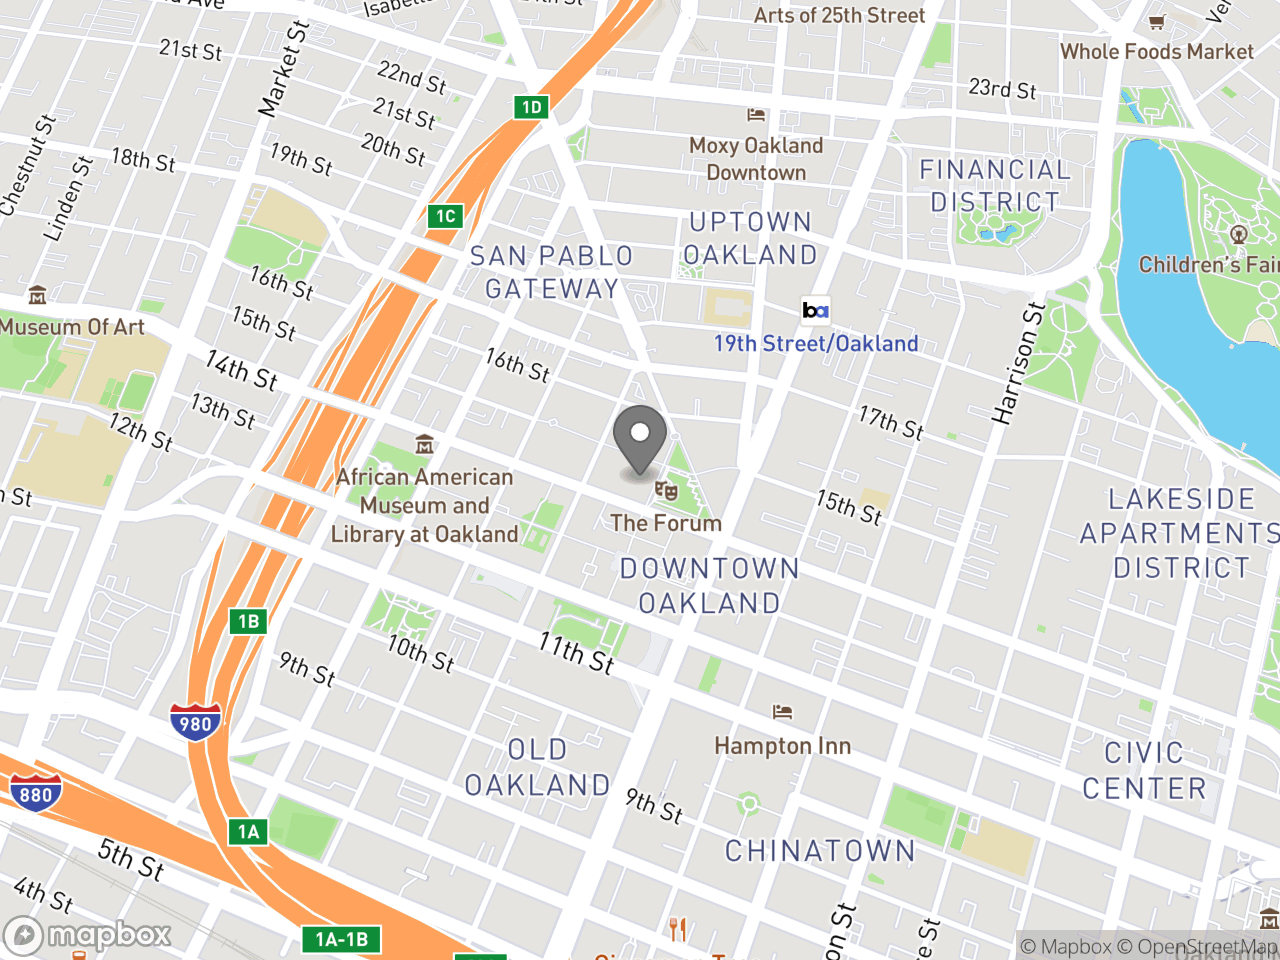 Map image for Rent Board Regular Meeting April 25, 2019, located at 1 Frank H Ogawa Plaza in Oakland, CA 94612